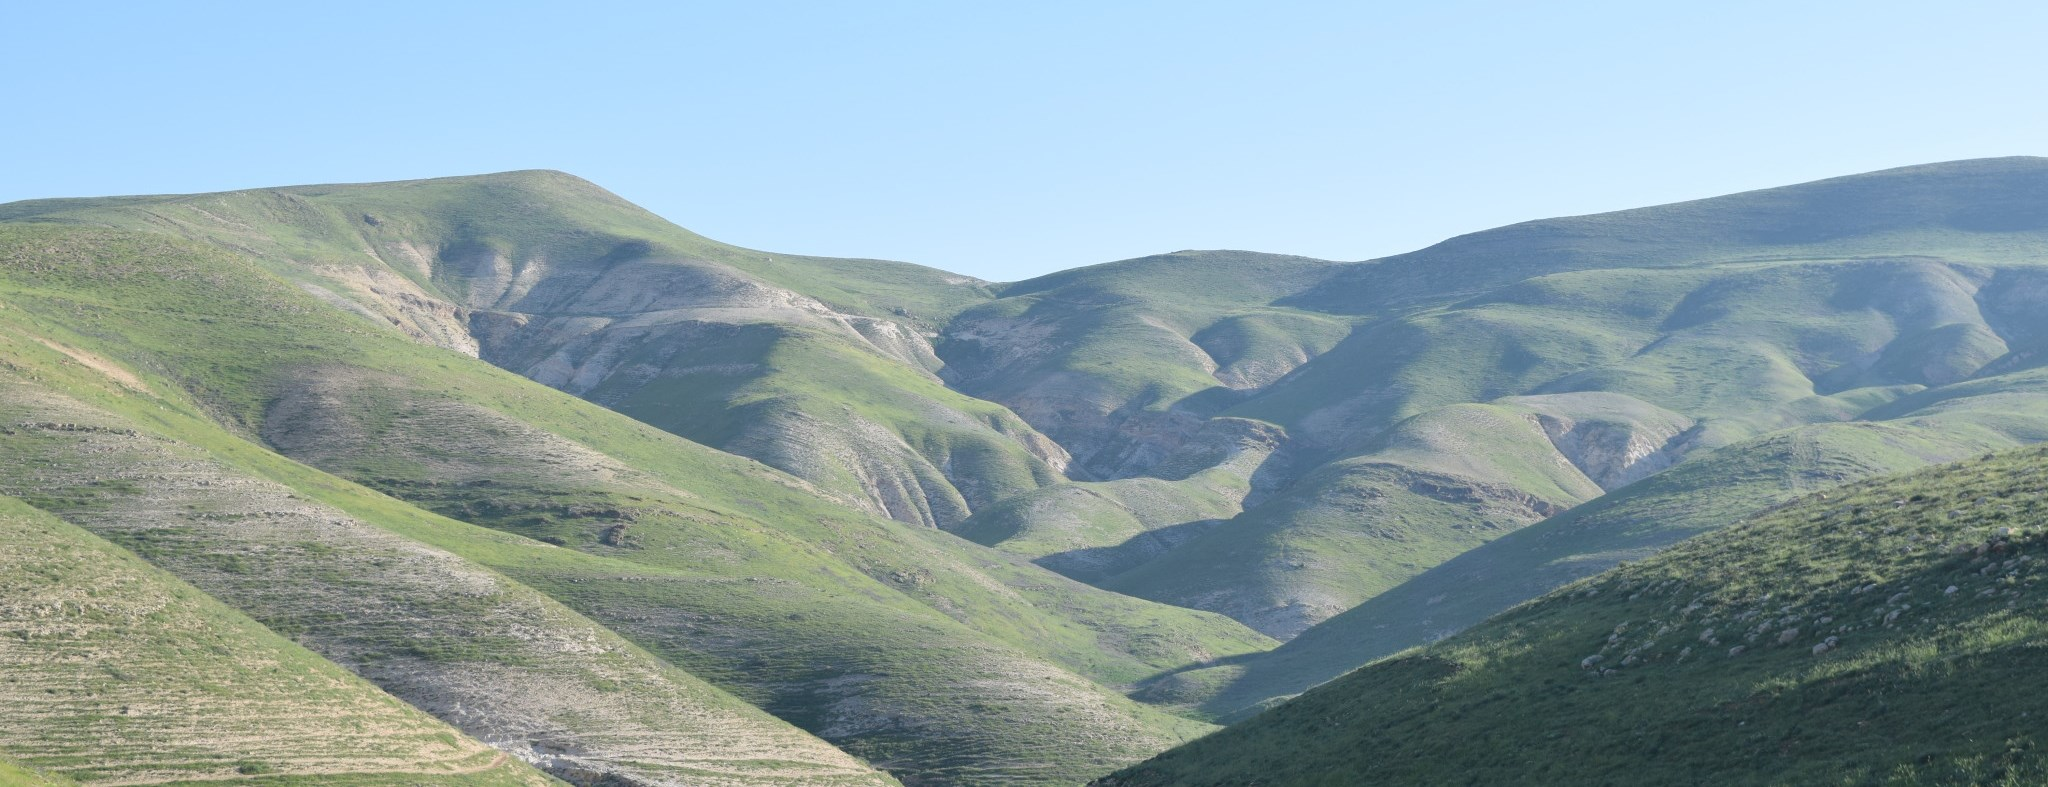 Why did David lift his eyes to the hills? A new perspective